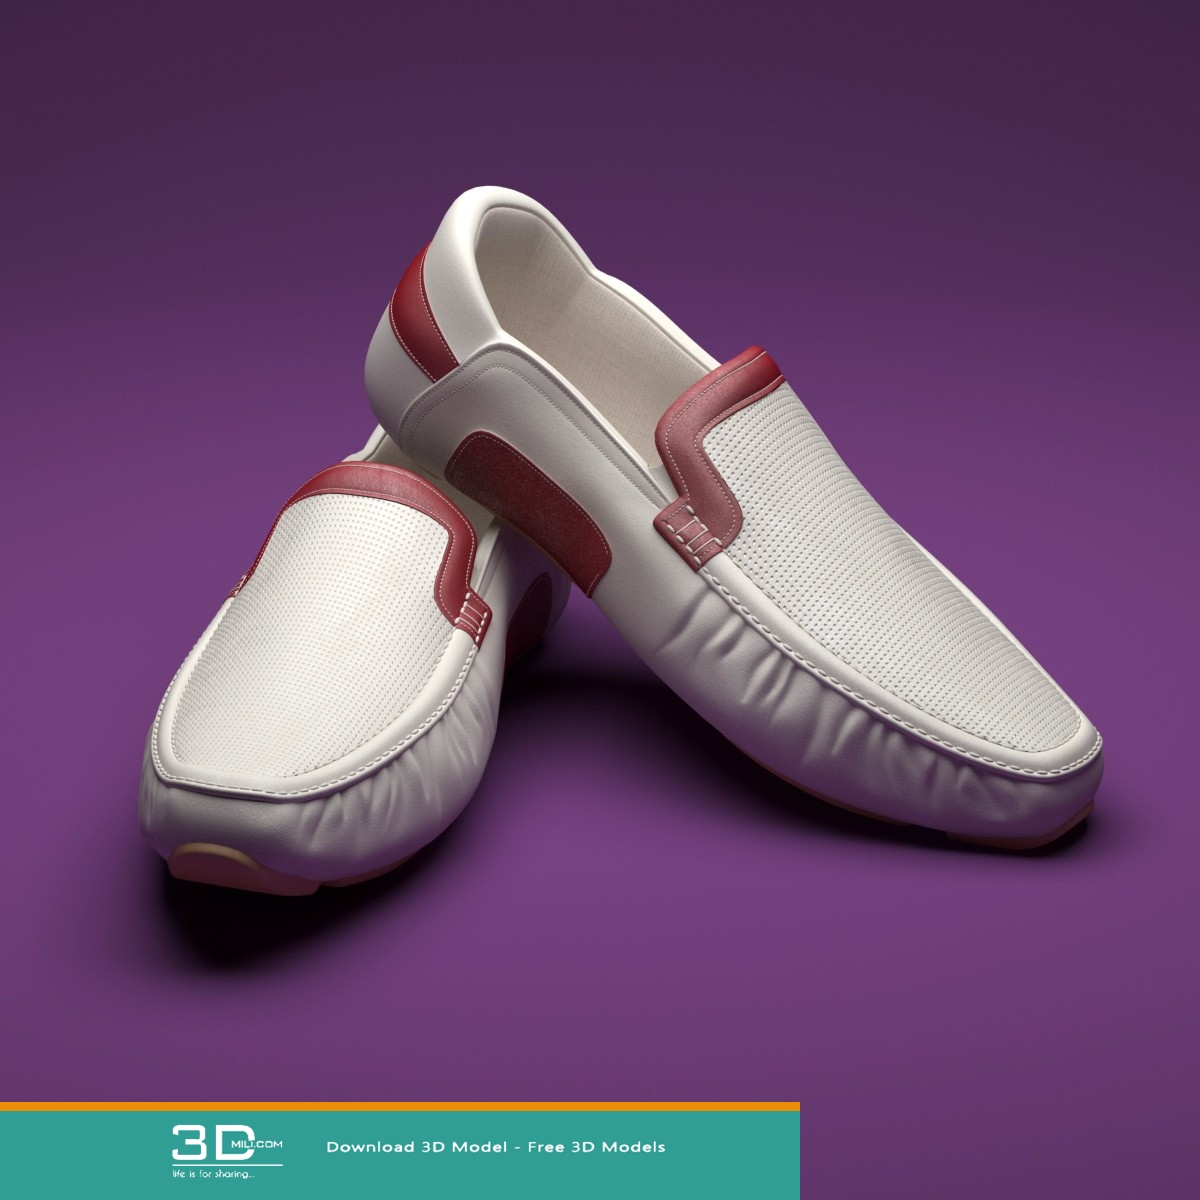 93  Shoes 3dmodel Free Download - 3D Mili - Download 3D